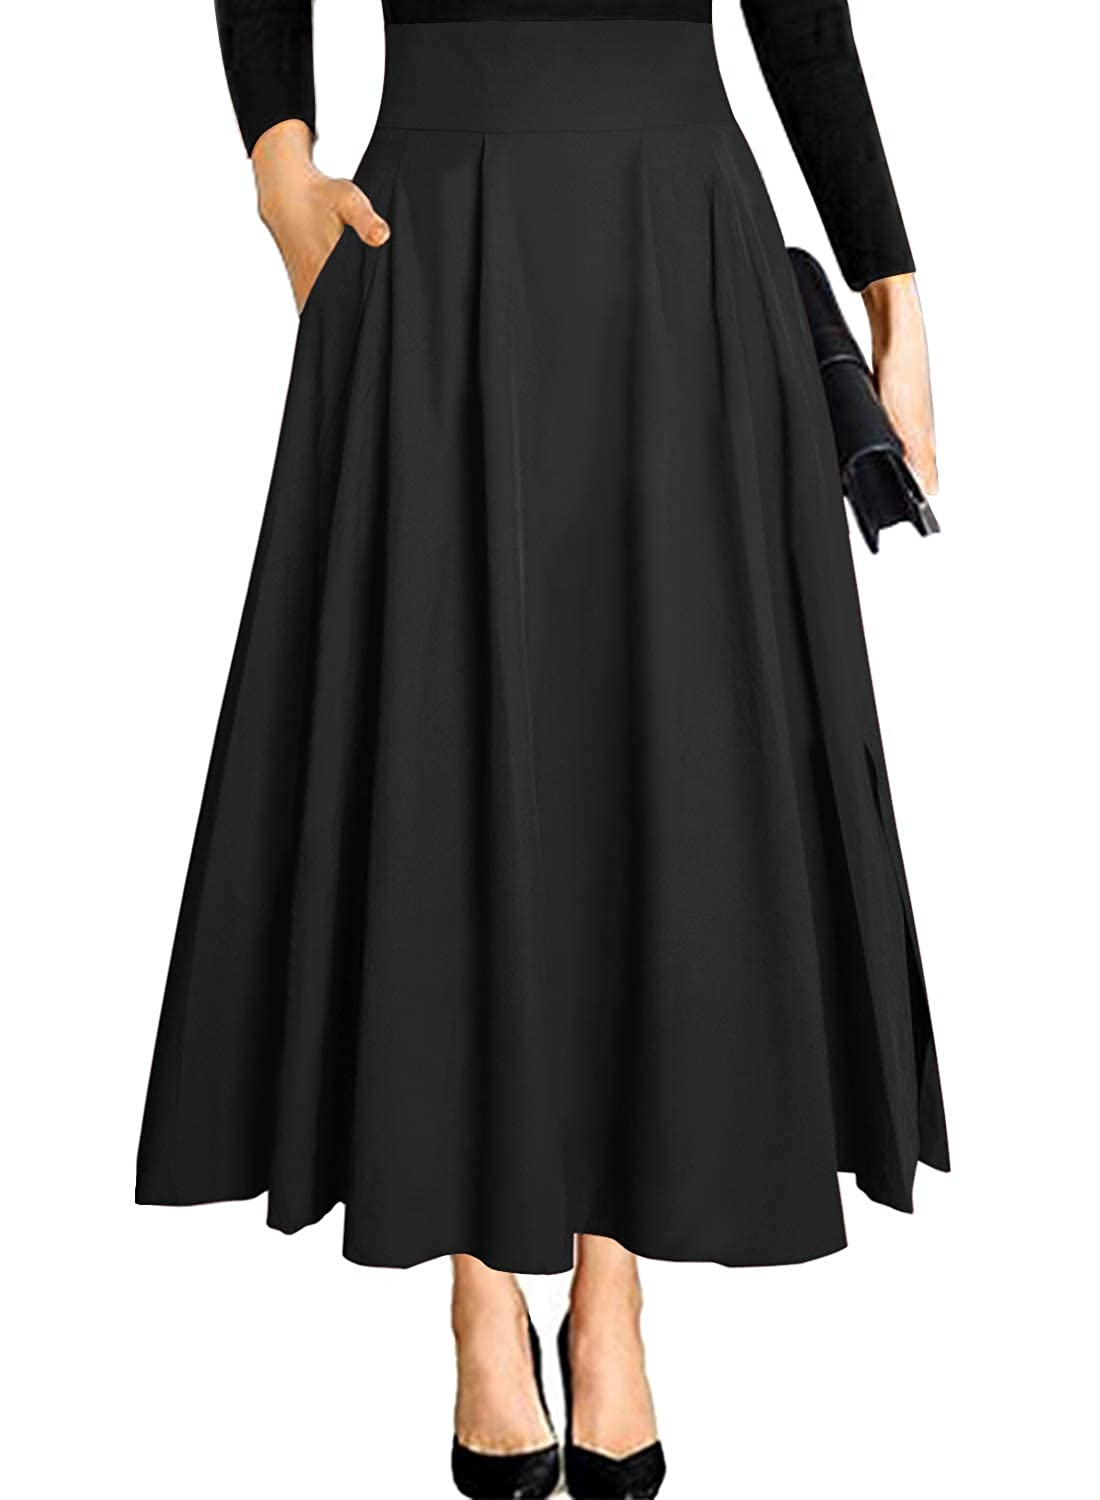 1950s Swing Skirt, Poodle Skirt, Pencil Skirts Ranphee Womens Ankle Length High Waist A-line Flowy Long Maxi Skirt with Pockets $25.99 AT vintagedancer.com